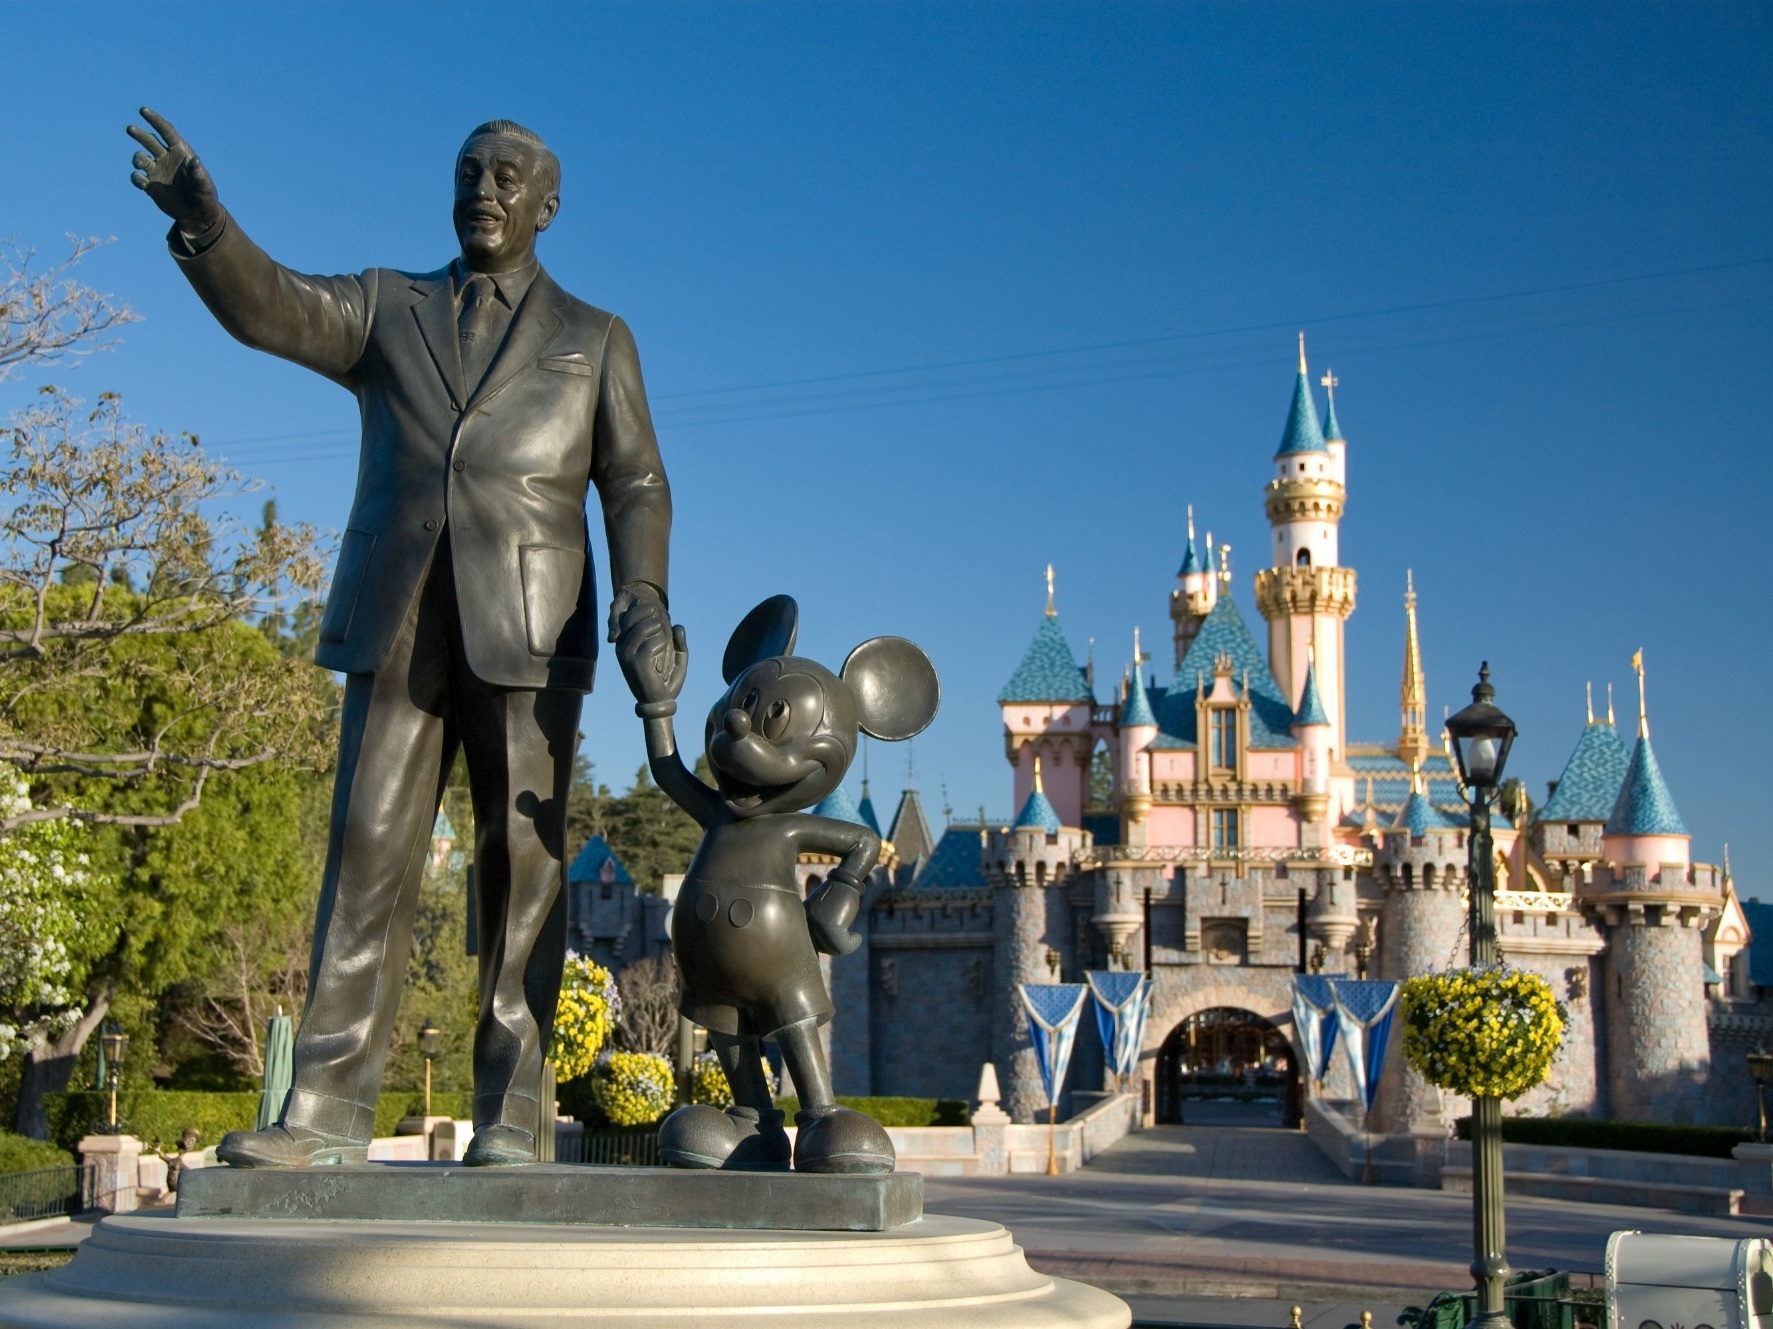 DISNEYLAND Resort (California) - The Happiest Place on Earth includes two theme parks, three on-site resort hotels, and its own shopping, dining, and entertainment district.